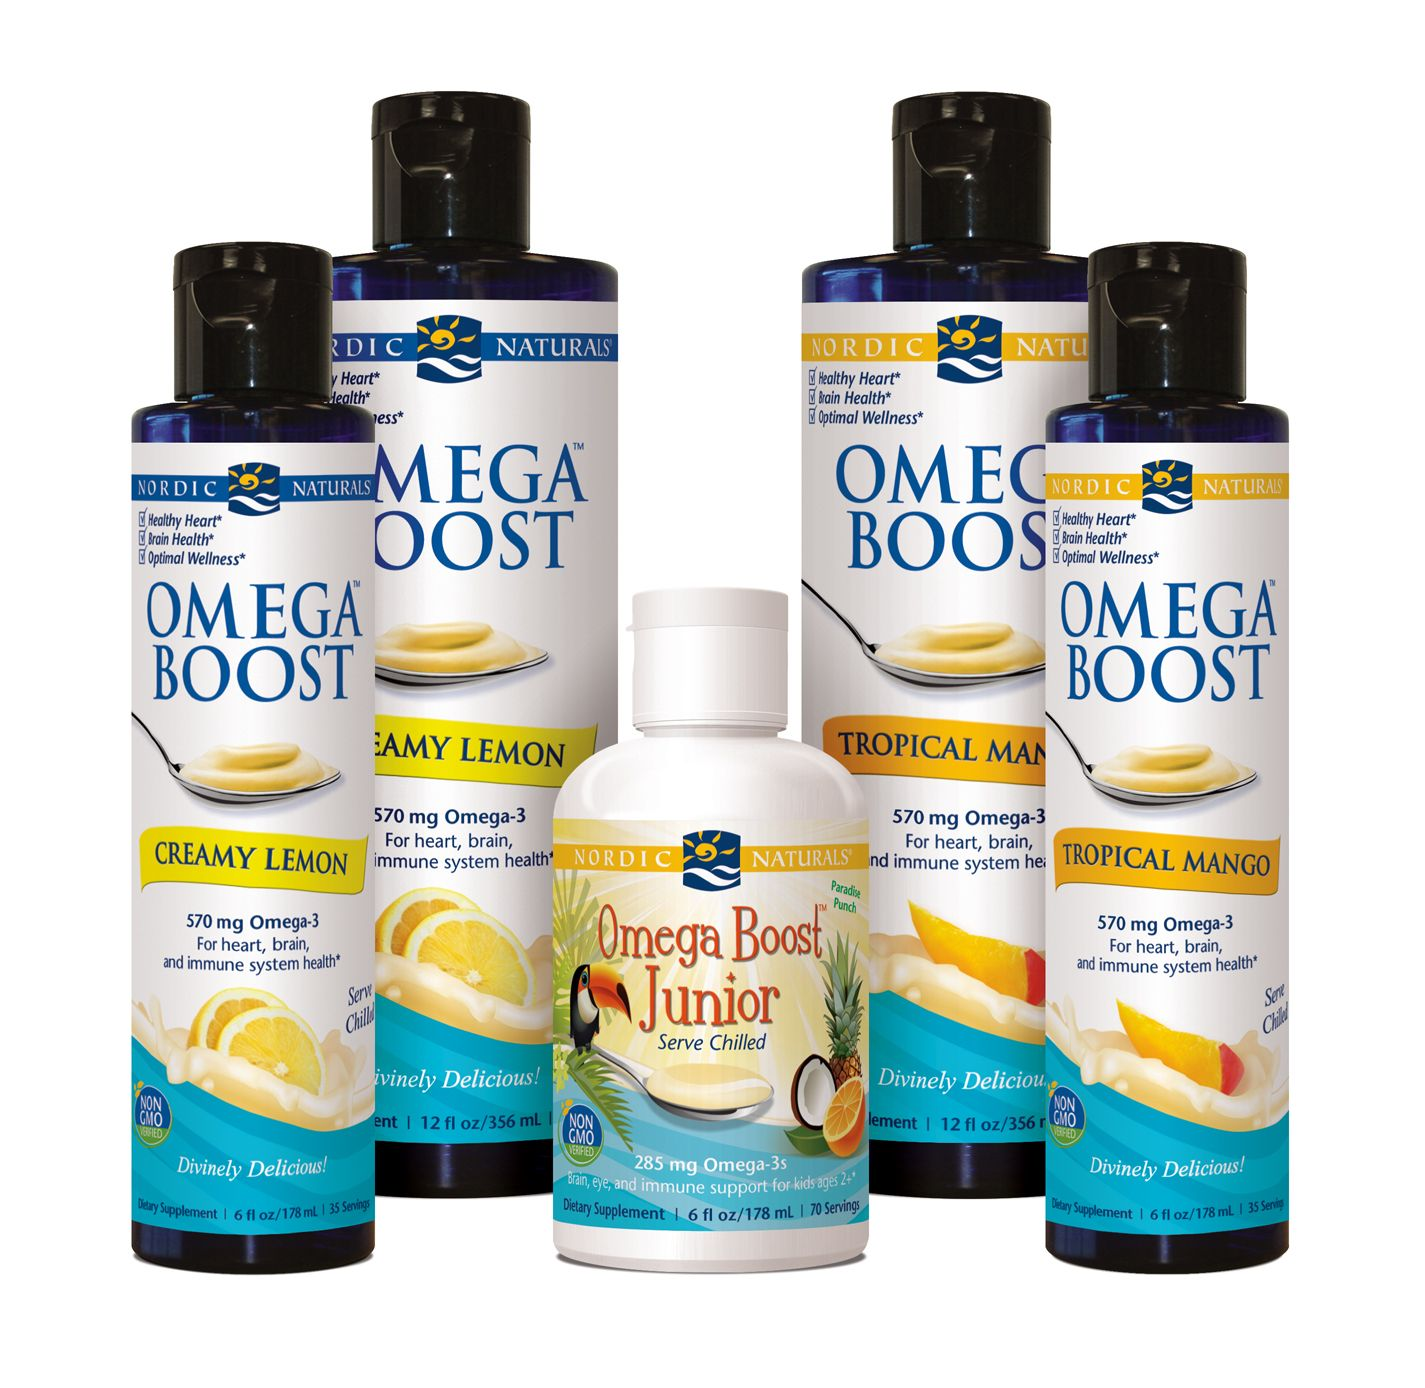 Nordic Naturals Omega Boost™ is a creamy, delicious